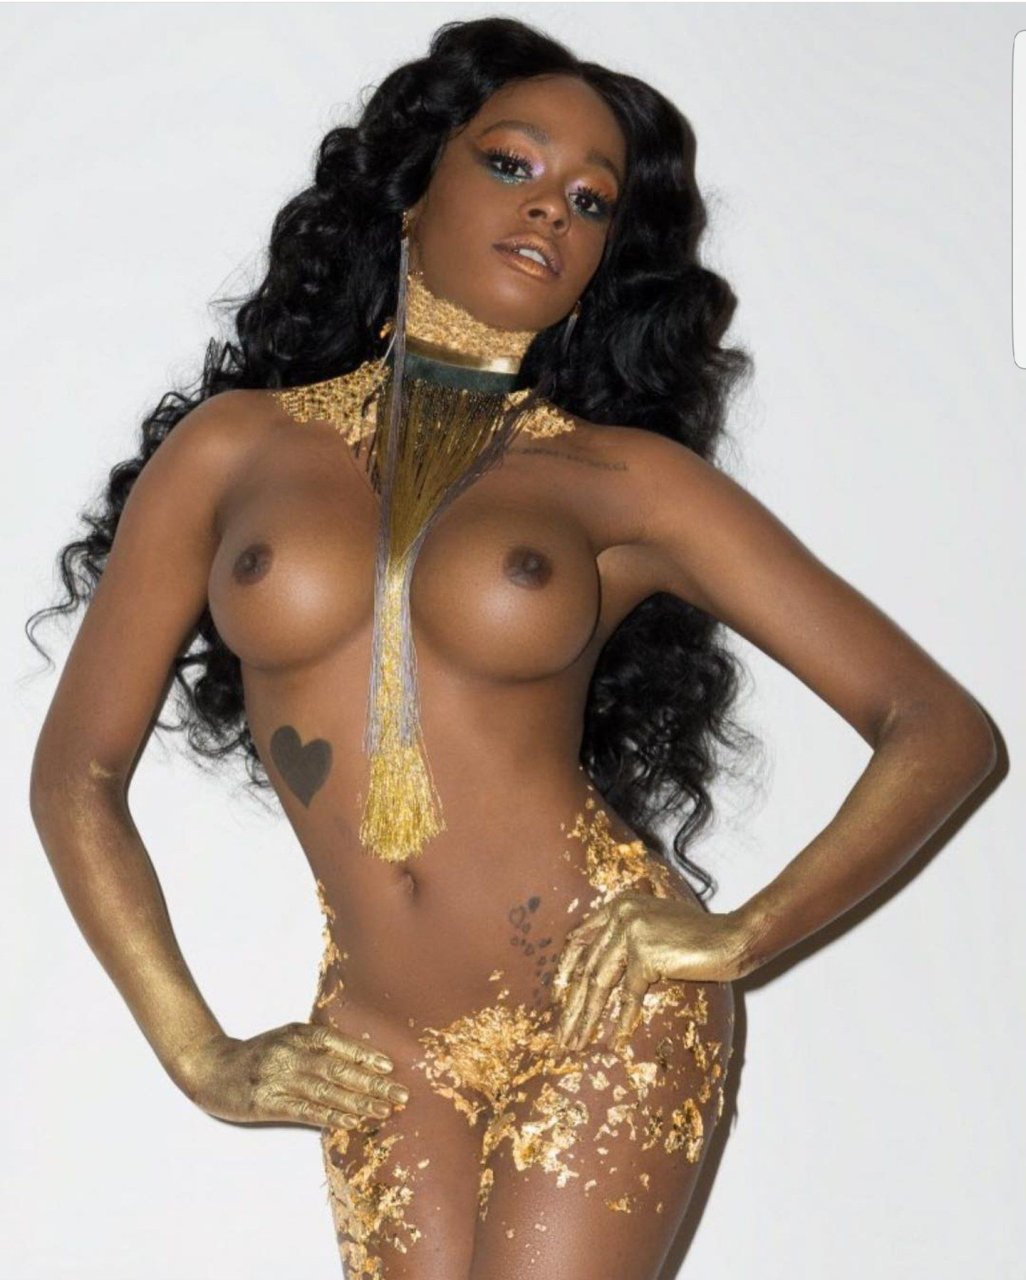 Challenge Tyra banks nude butt all, she's